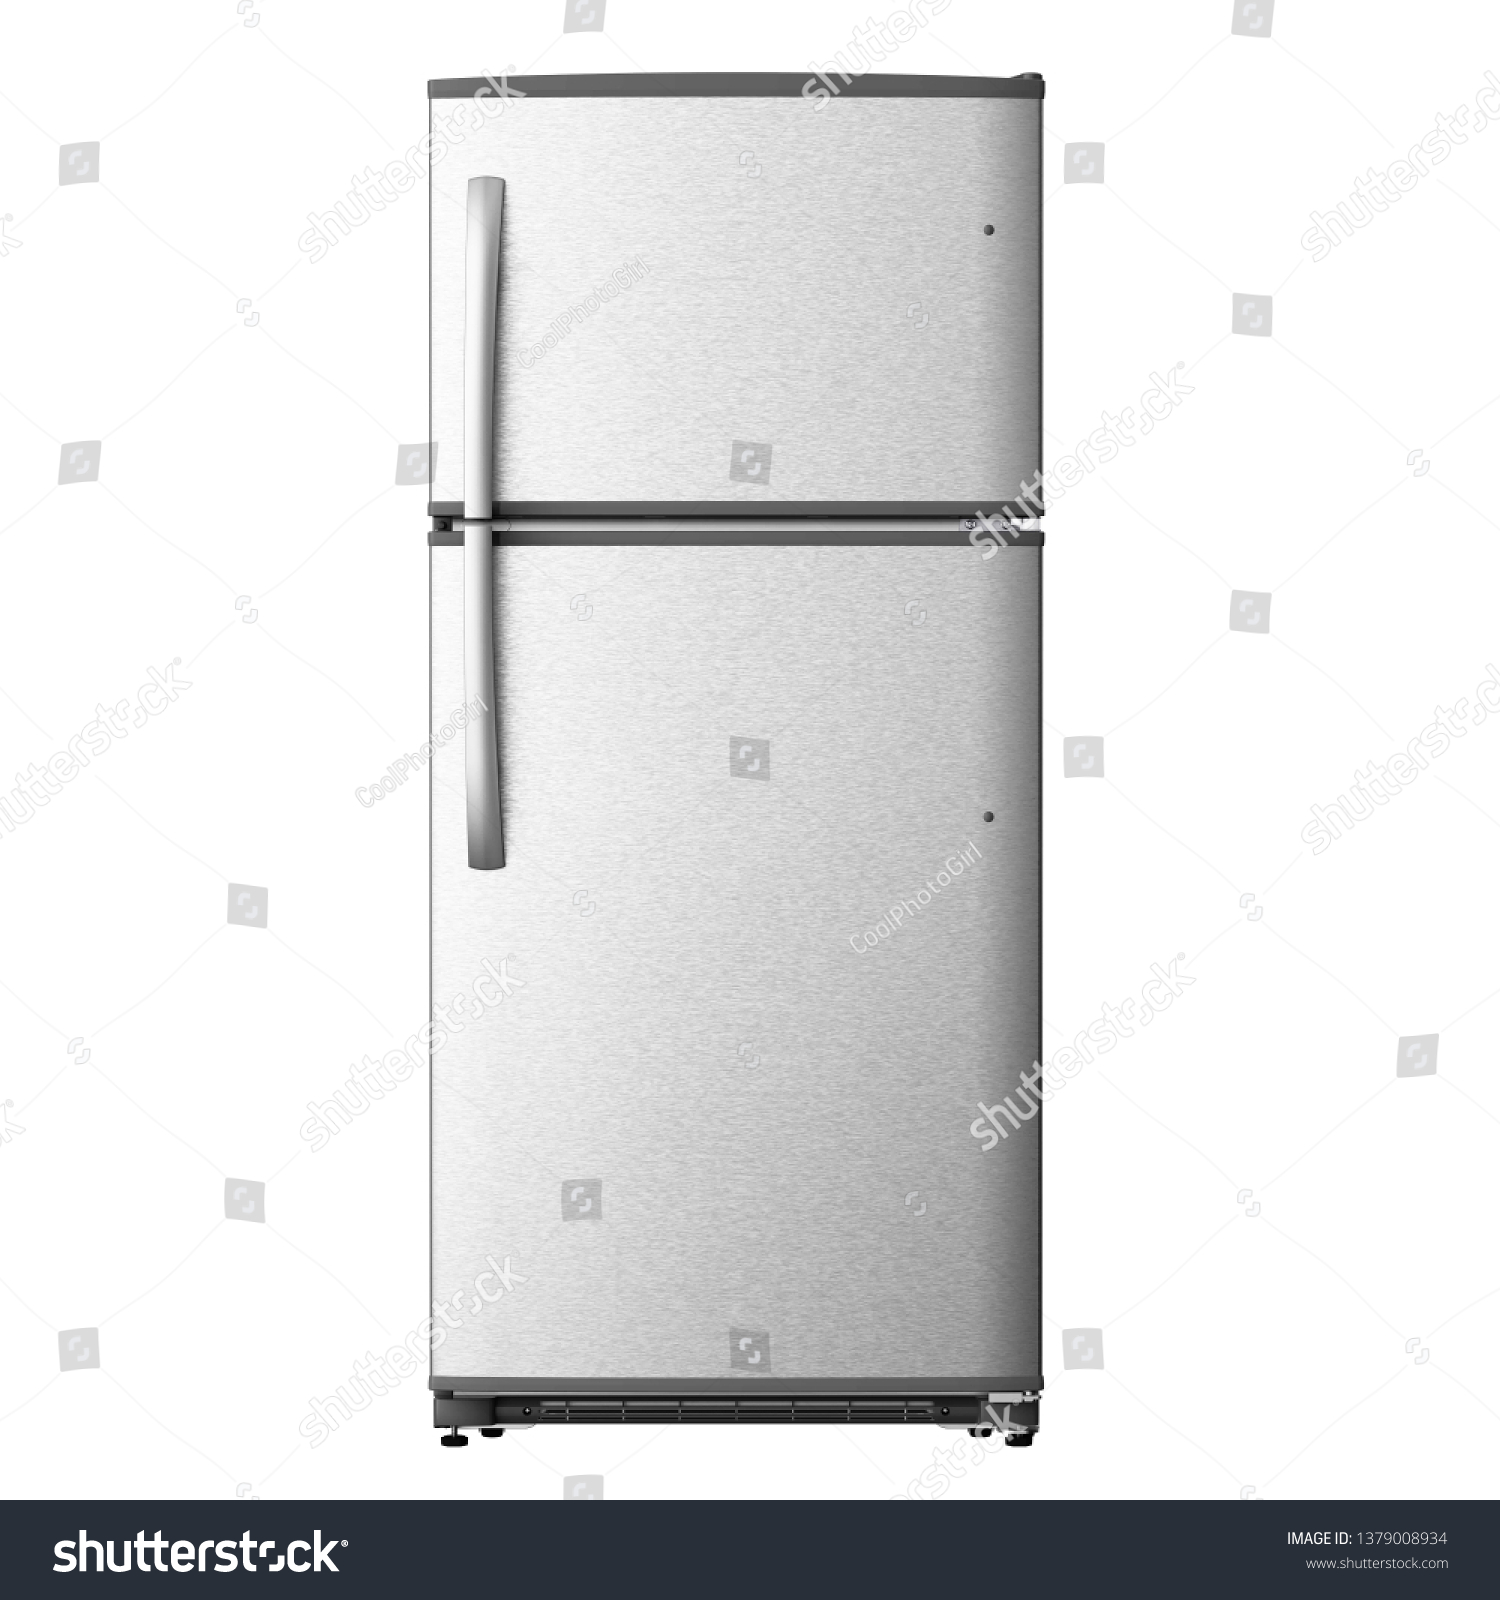 Top Mount Refrigerator Isolated on White. Front View of Stainless Steel Double Door Fridge. Full Frost Free Freezer. Modern Kitchen and Domestic Major Appliances #1379008934